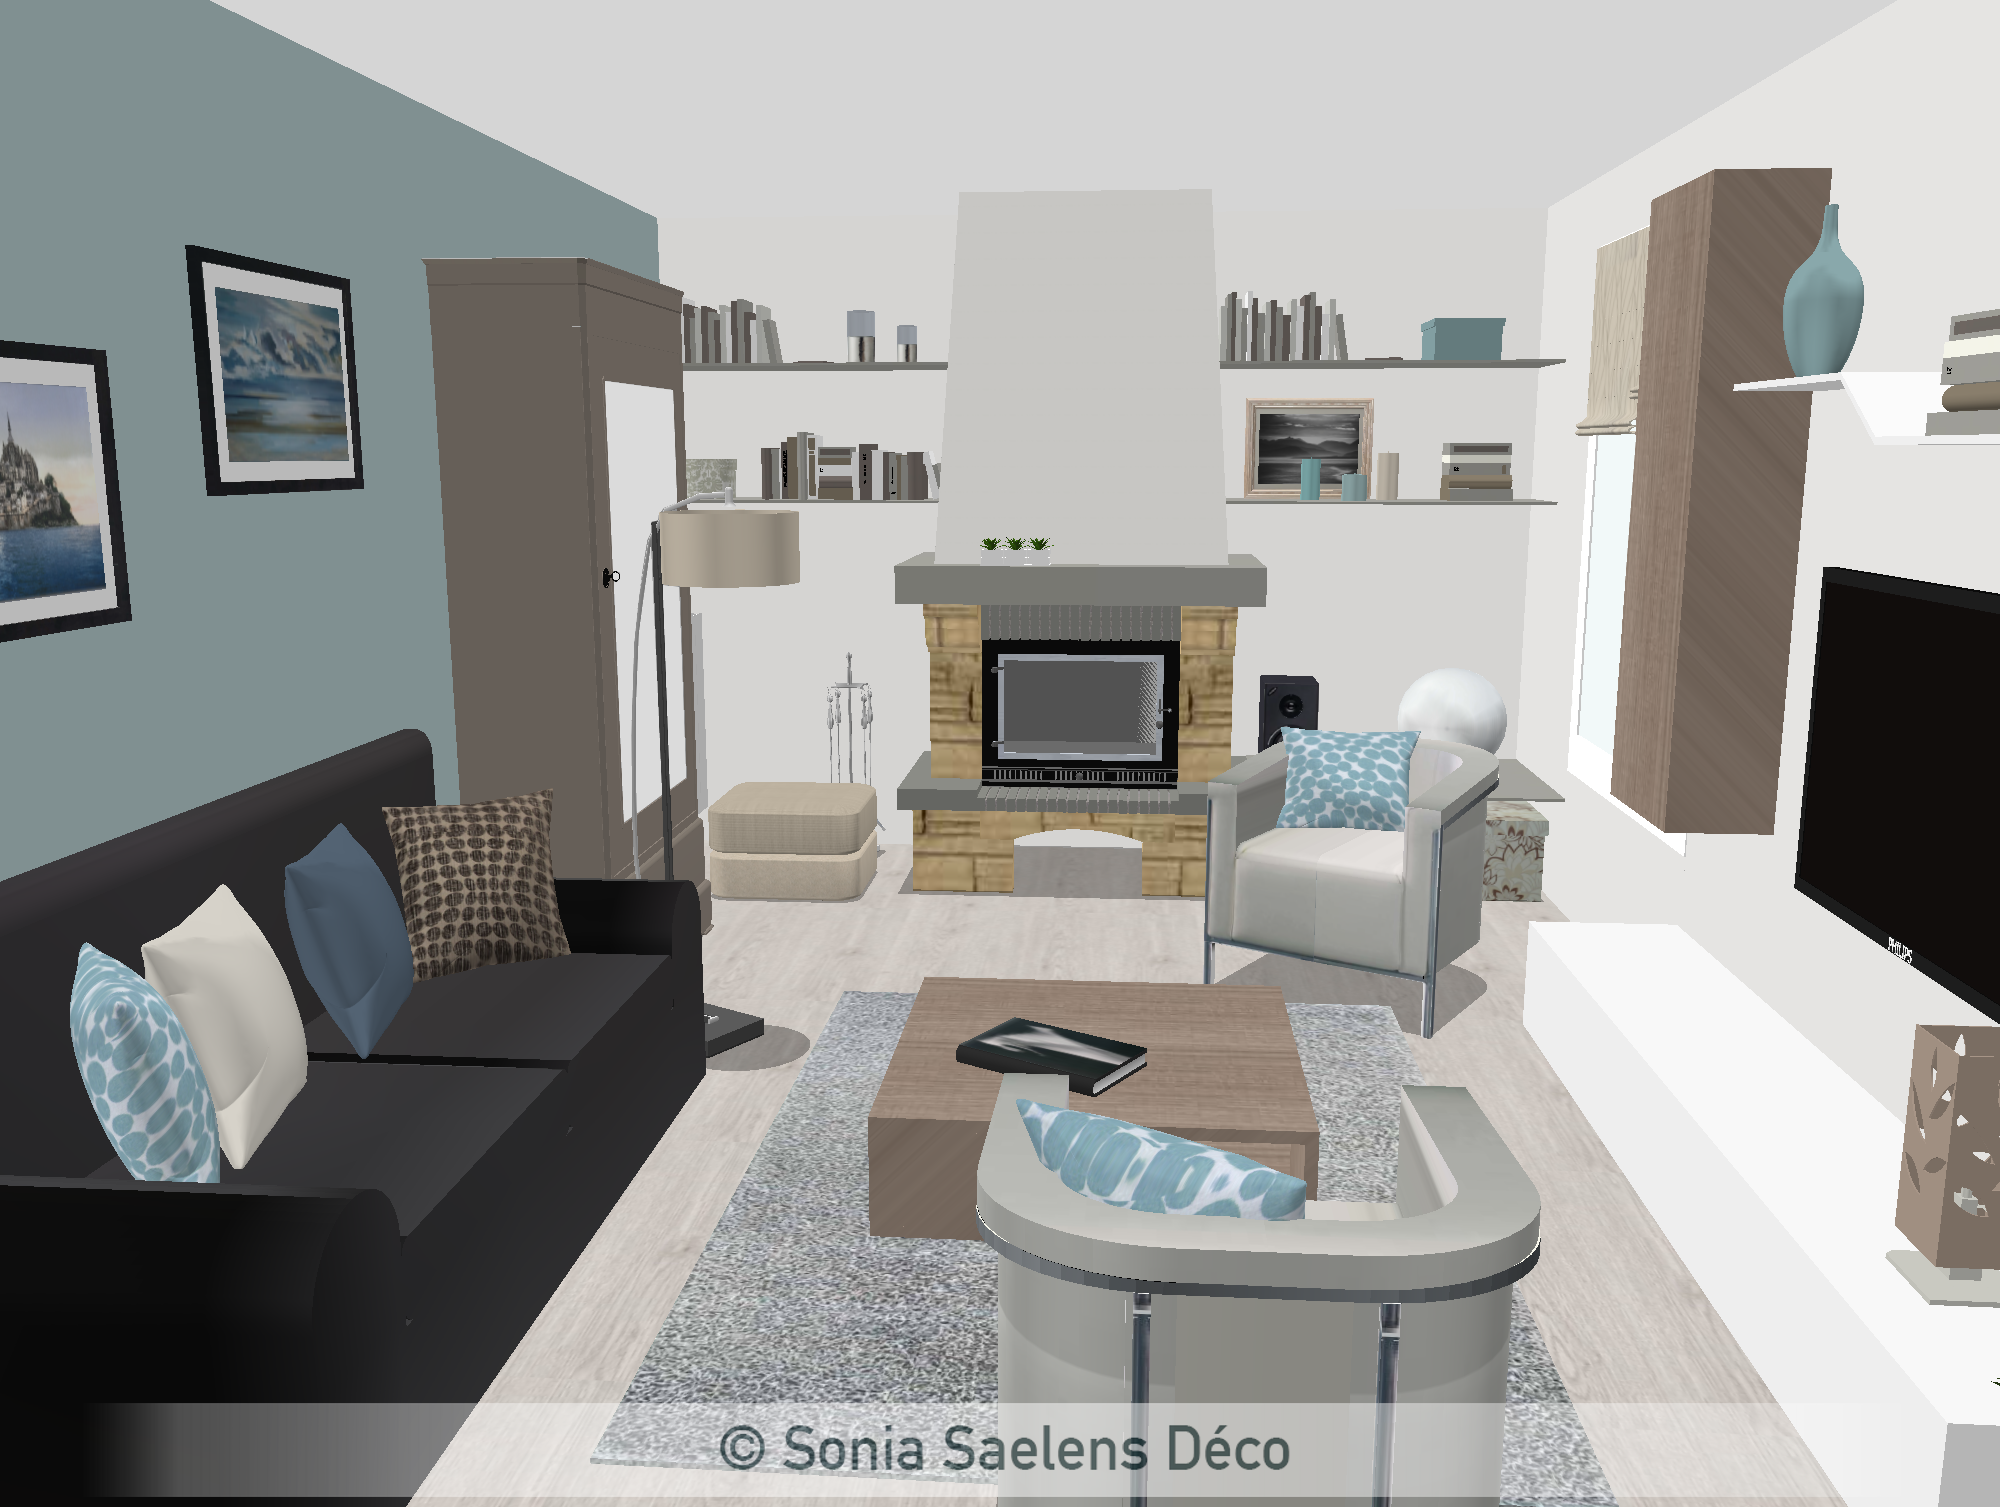 projet client relooking d 39 une pi ce vivre sonia saelens d co. Black Bedroom Furniture Sets. Home Design Ideas